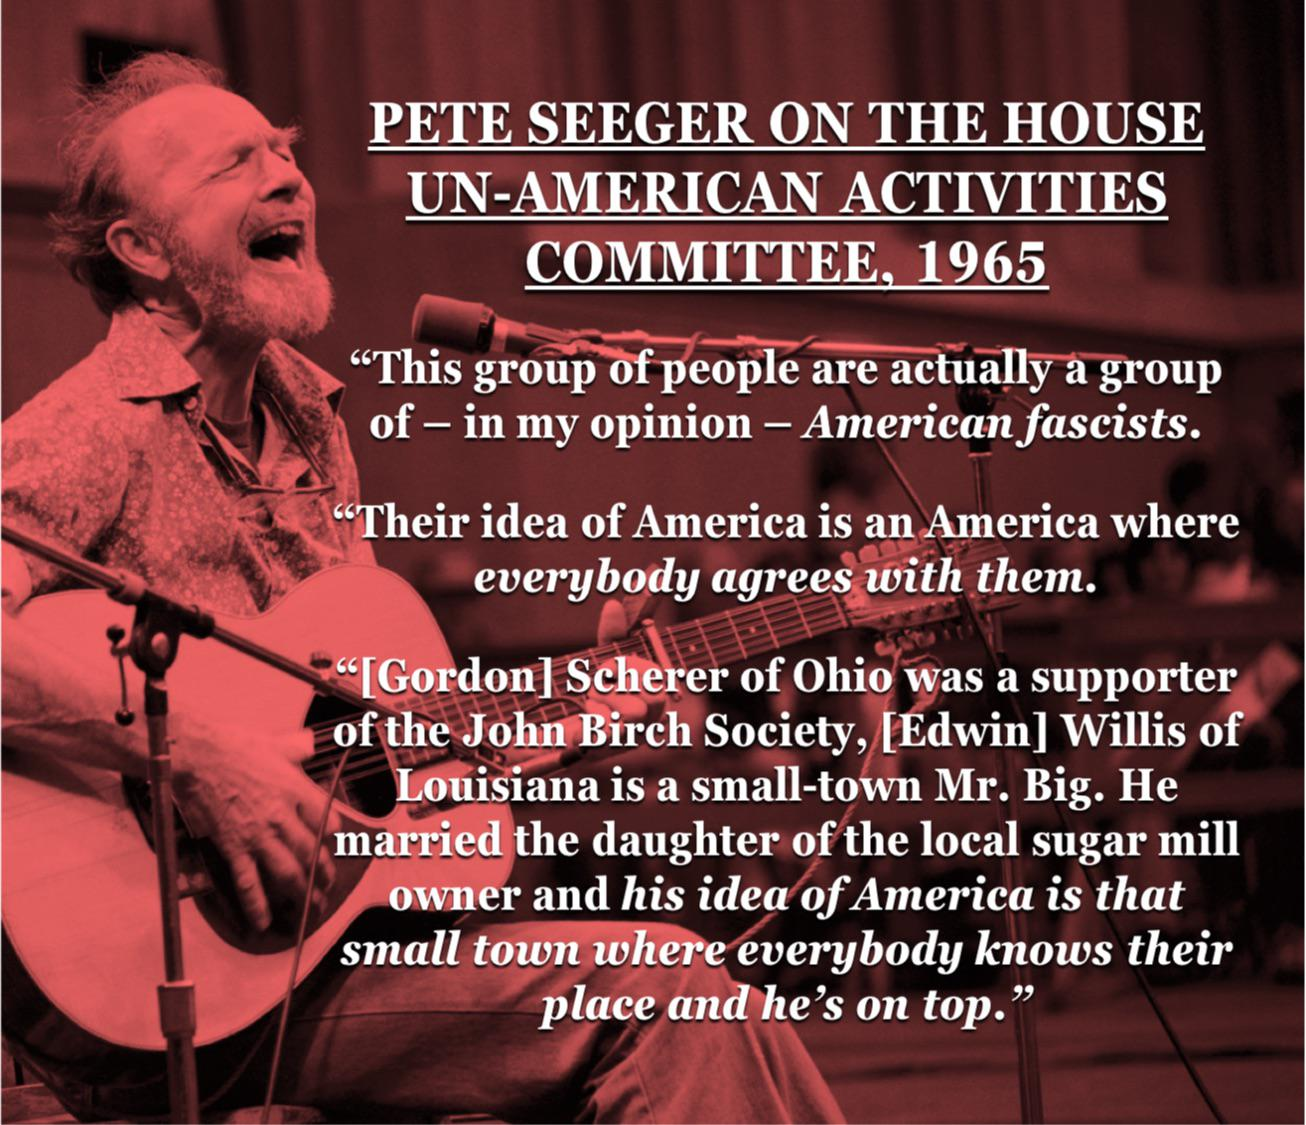 "On the mindset of an American fascist: ""…his idea of America is that small town where everybody knows their place and he's on top."" -Pete Seeger [1306×1125]"